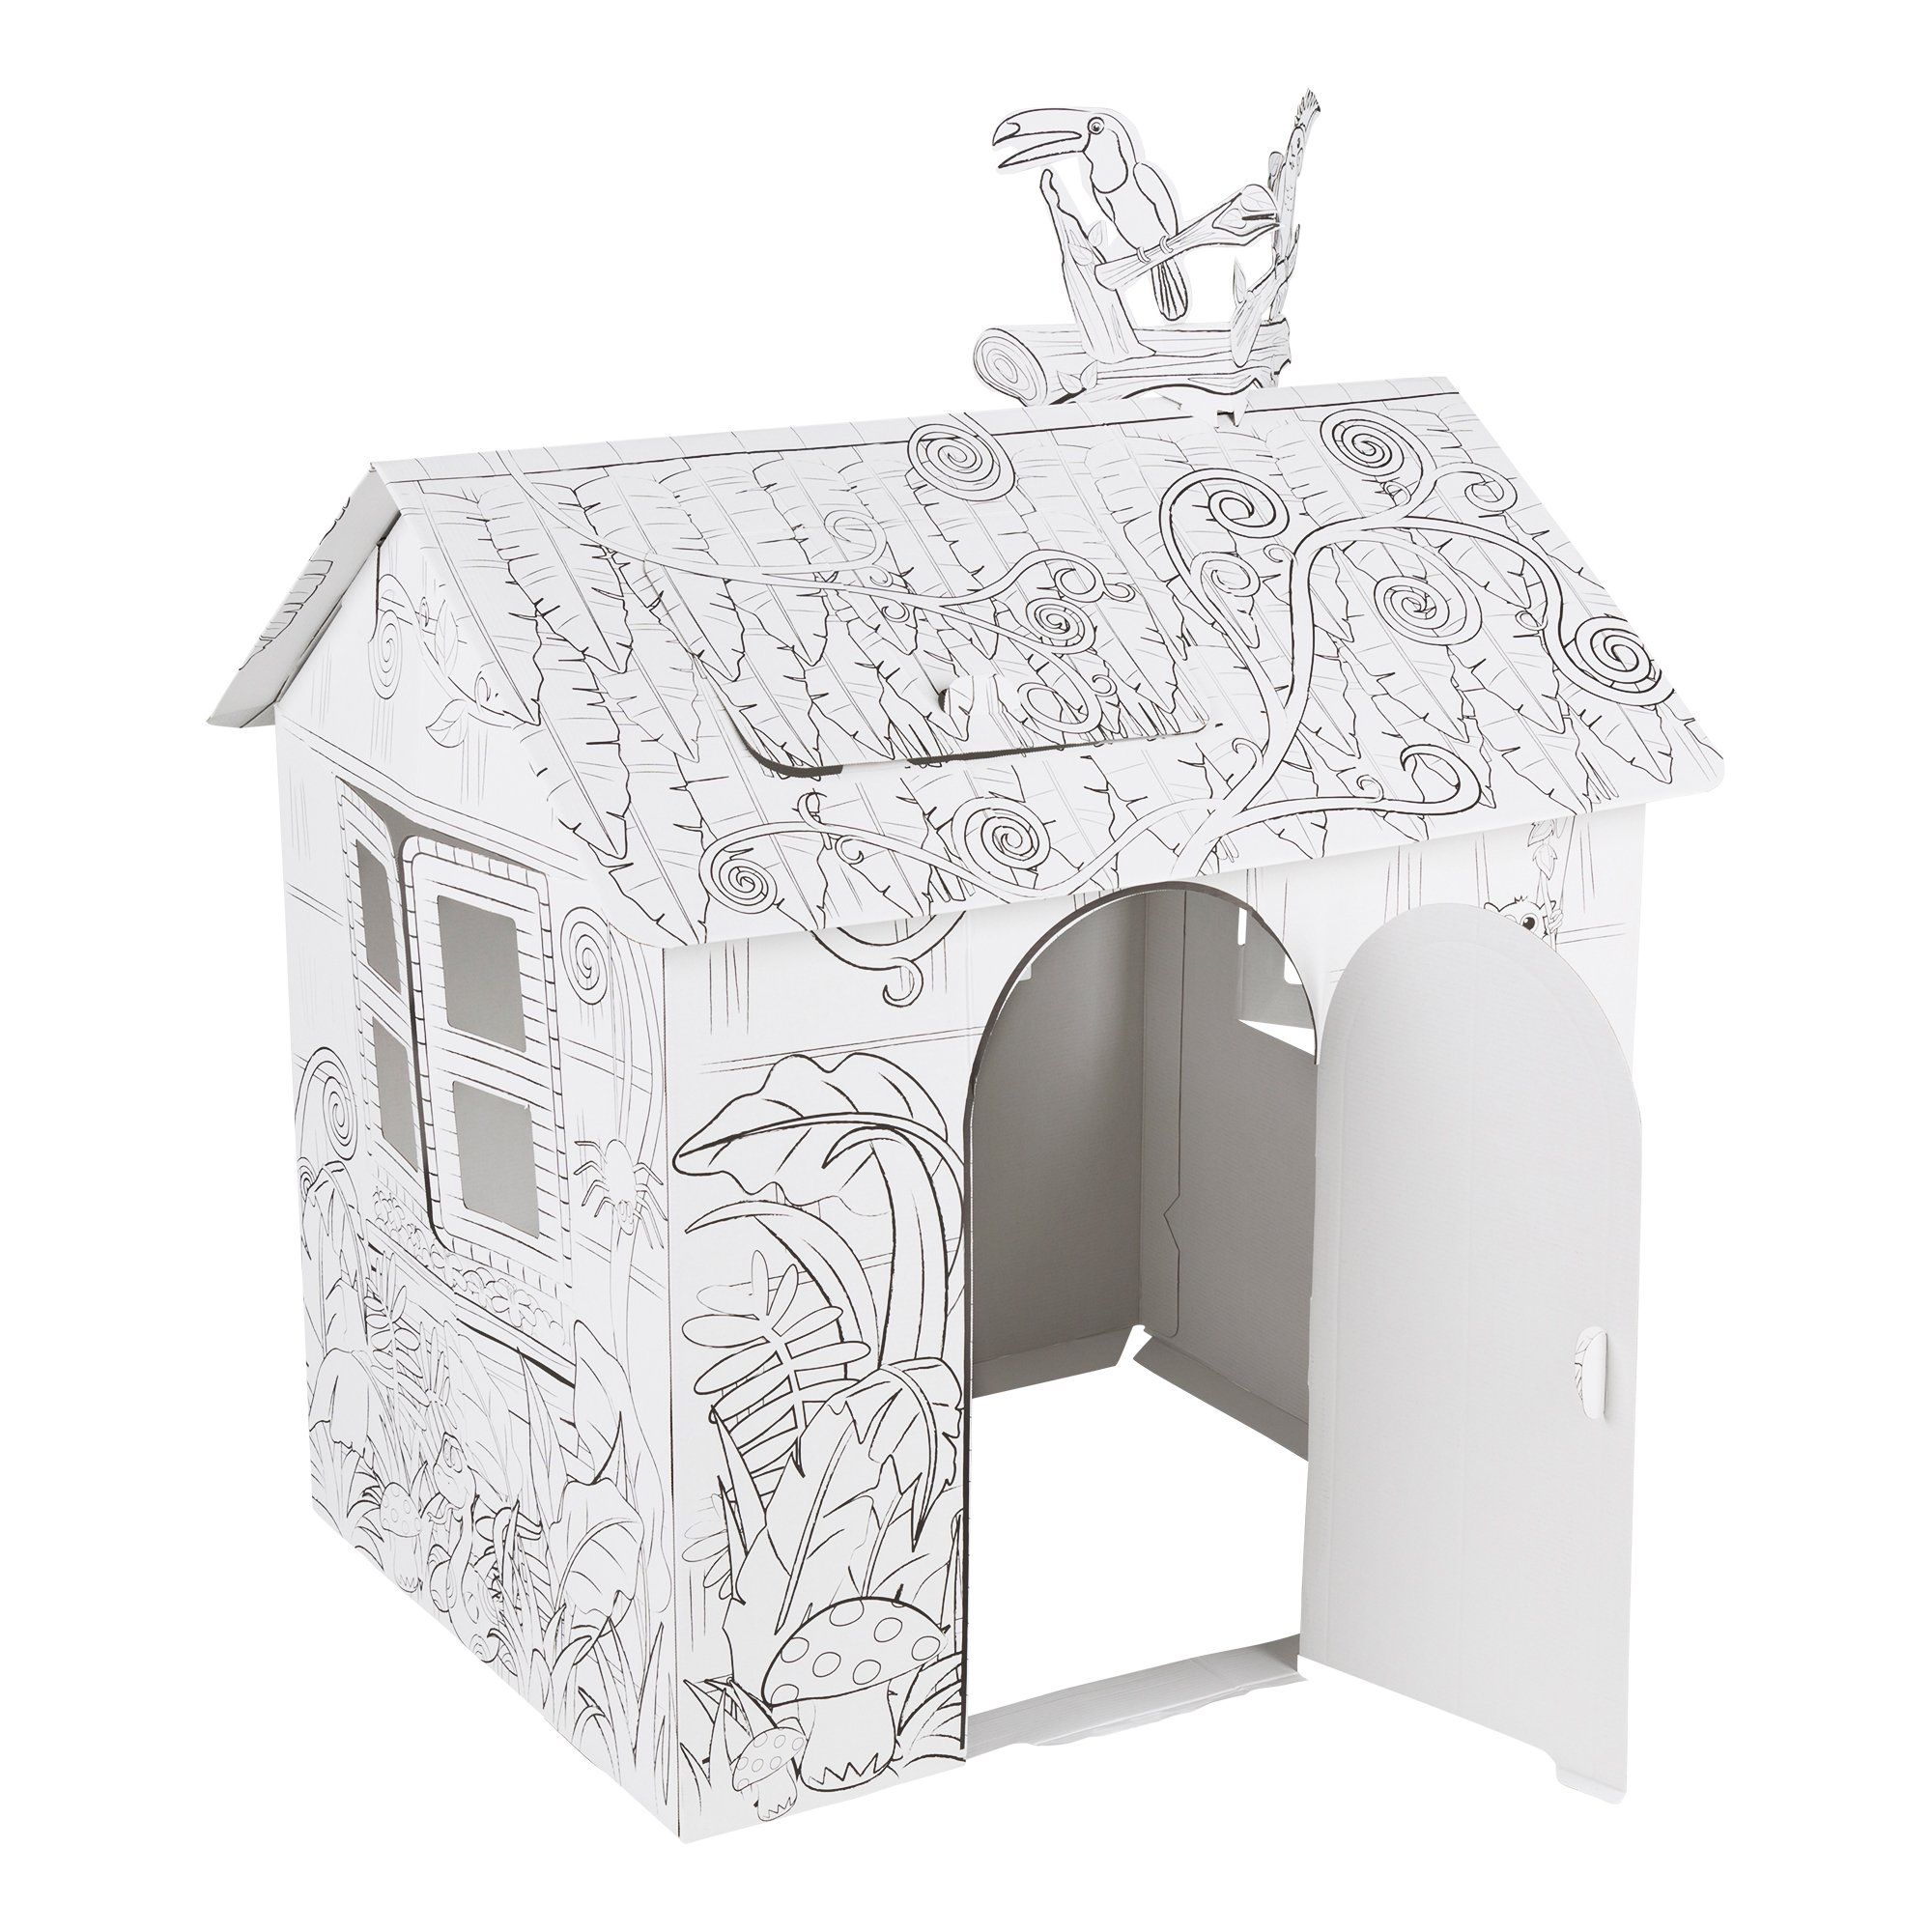 Fat Catalog DIY Kid Sized Playhouse Coloring Kit- Cardboard and Corrugated, White/Black